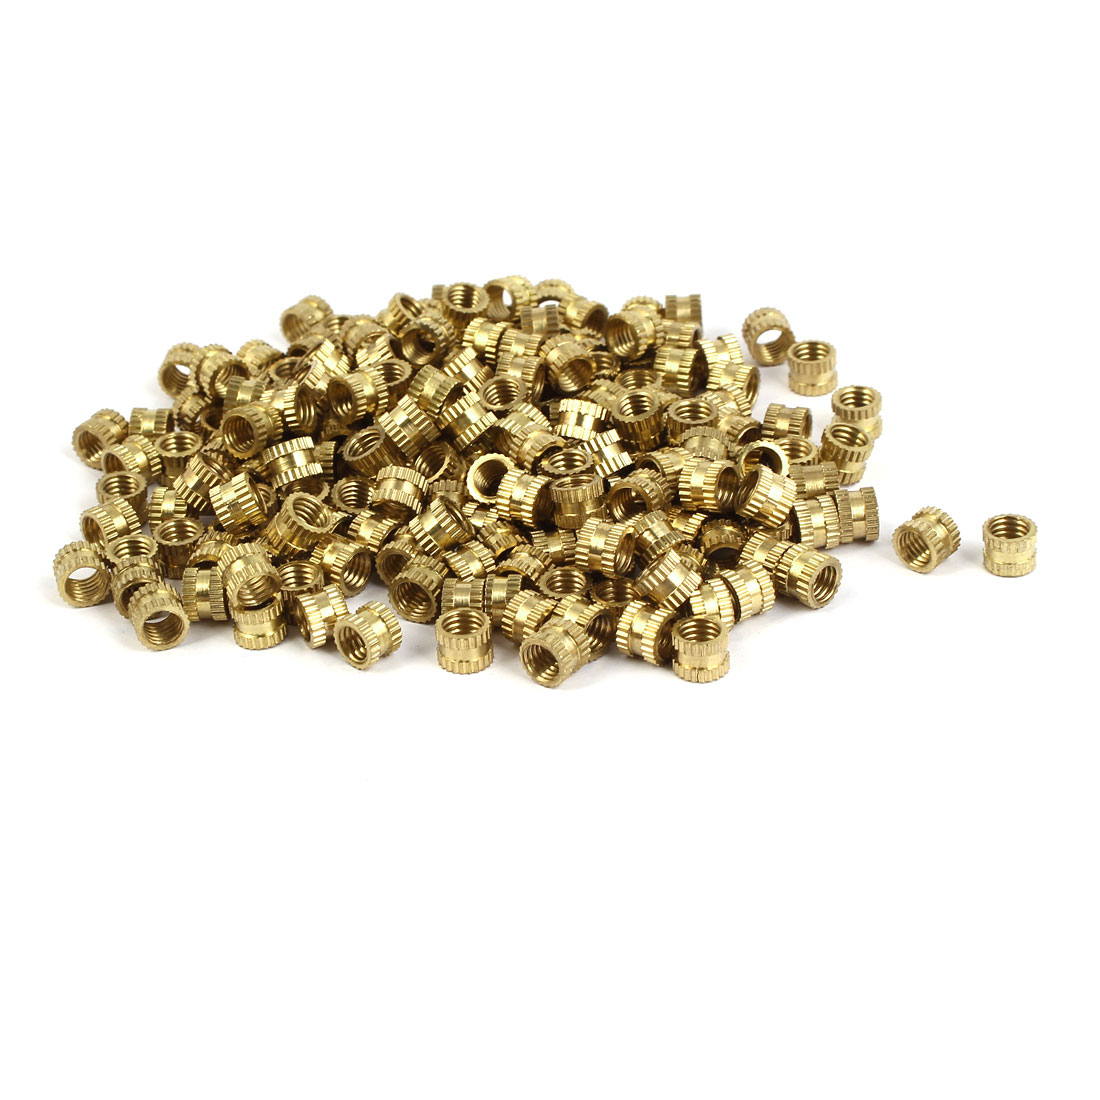 M5 x 5mm 0.8mm Pitch Brass Knurled Threaded Round Insert Embedded Nuts 200PCS